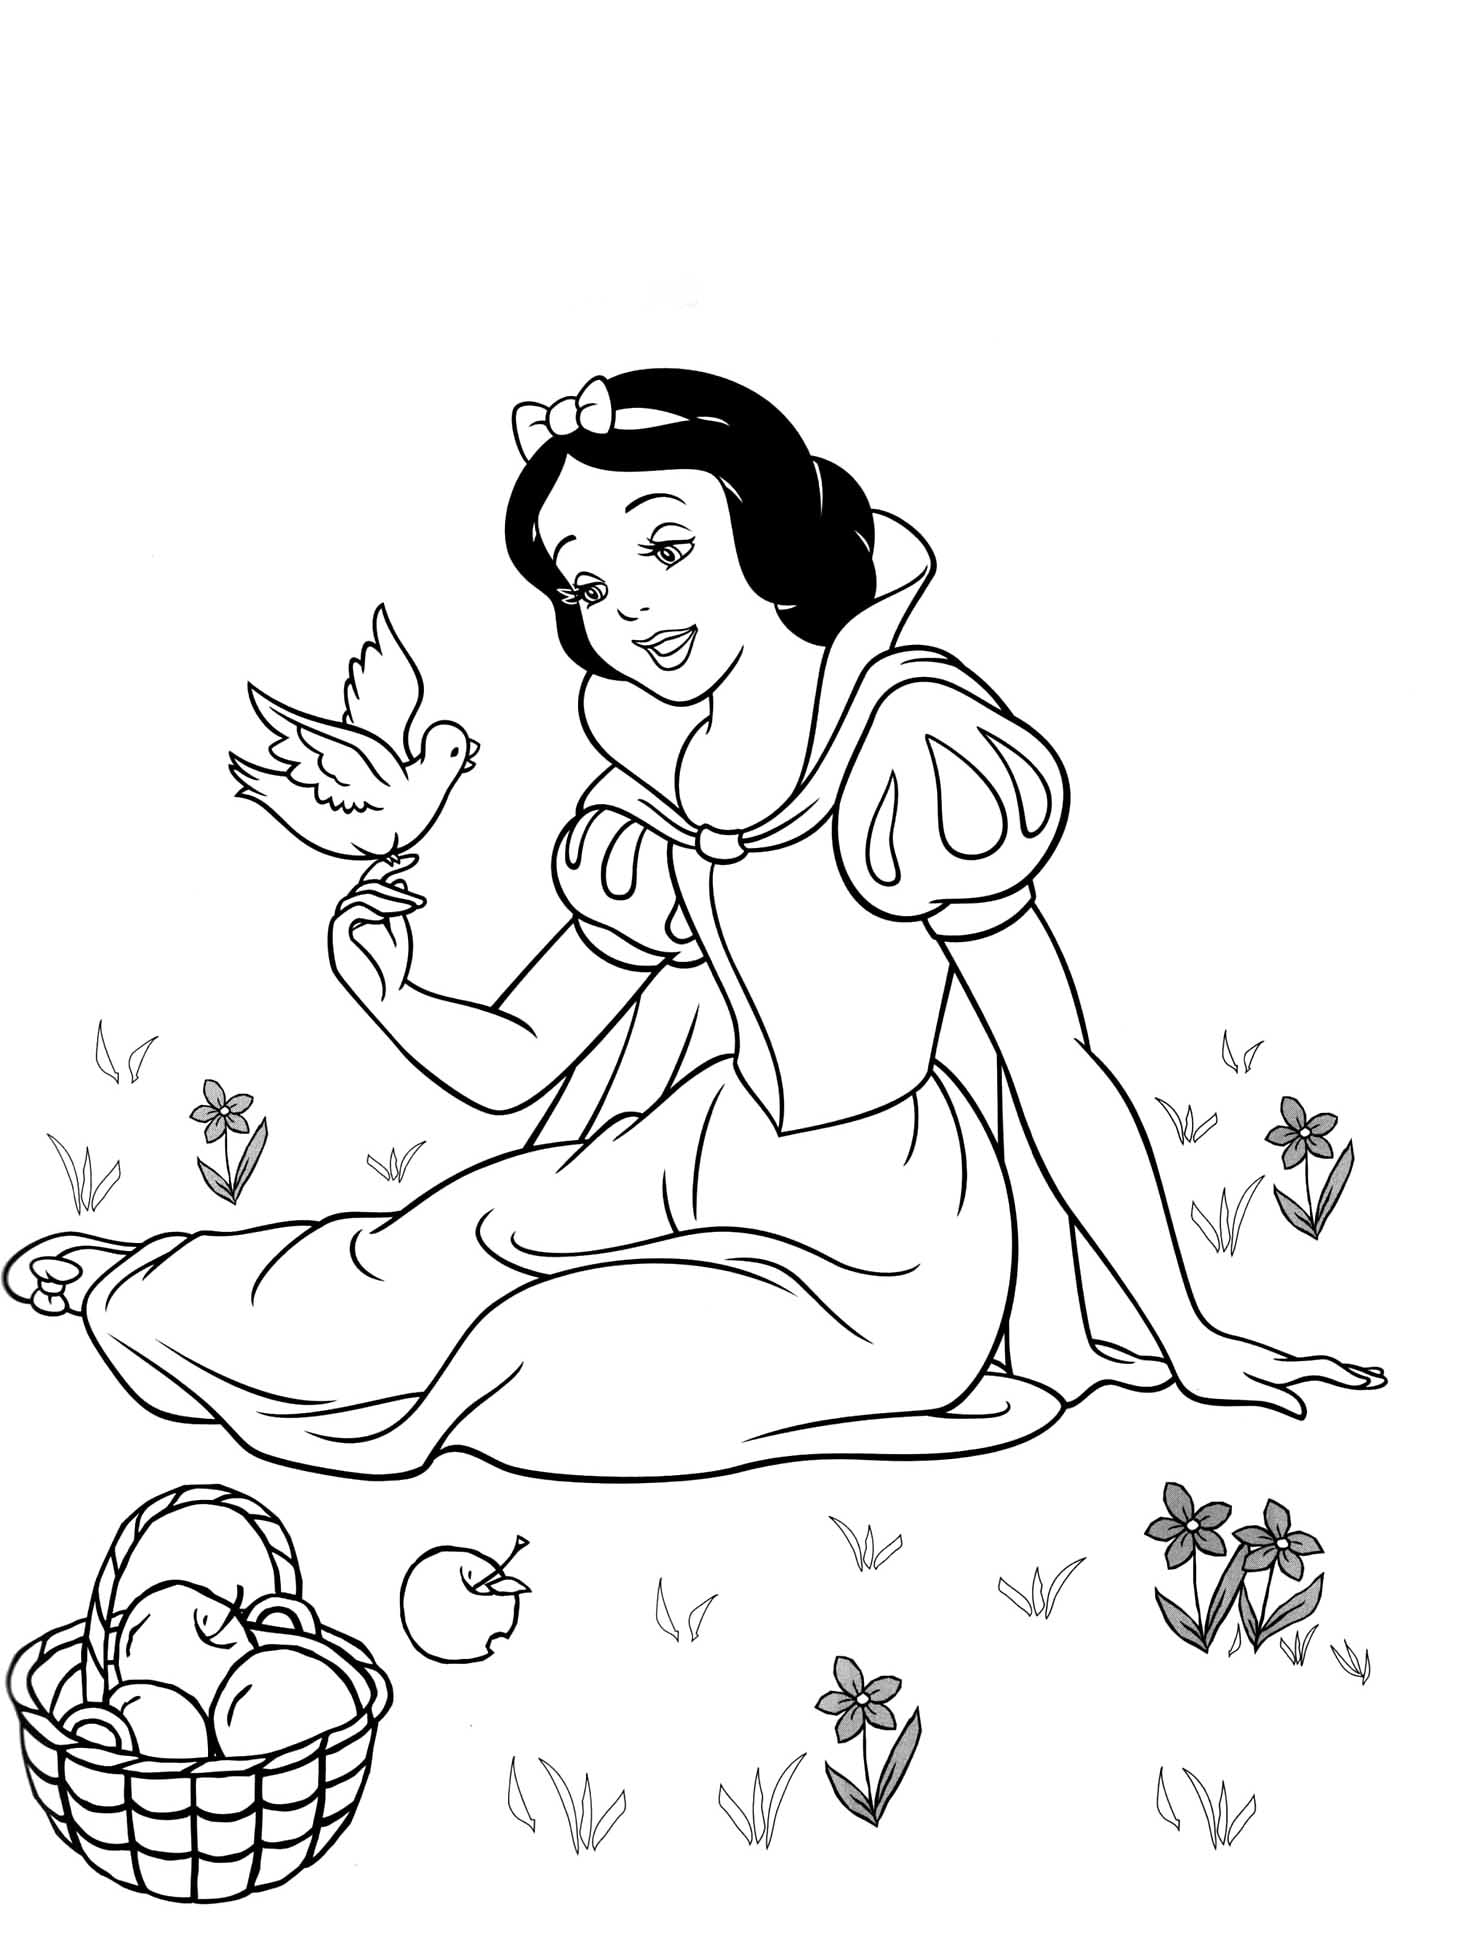 Snow White into the woods